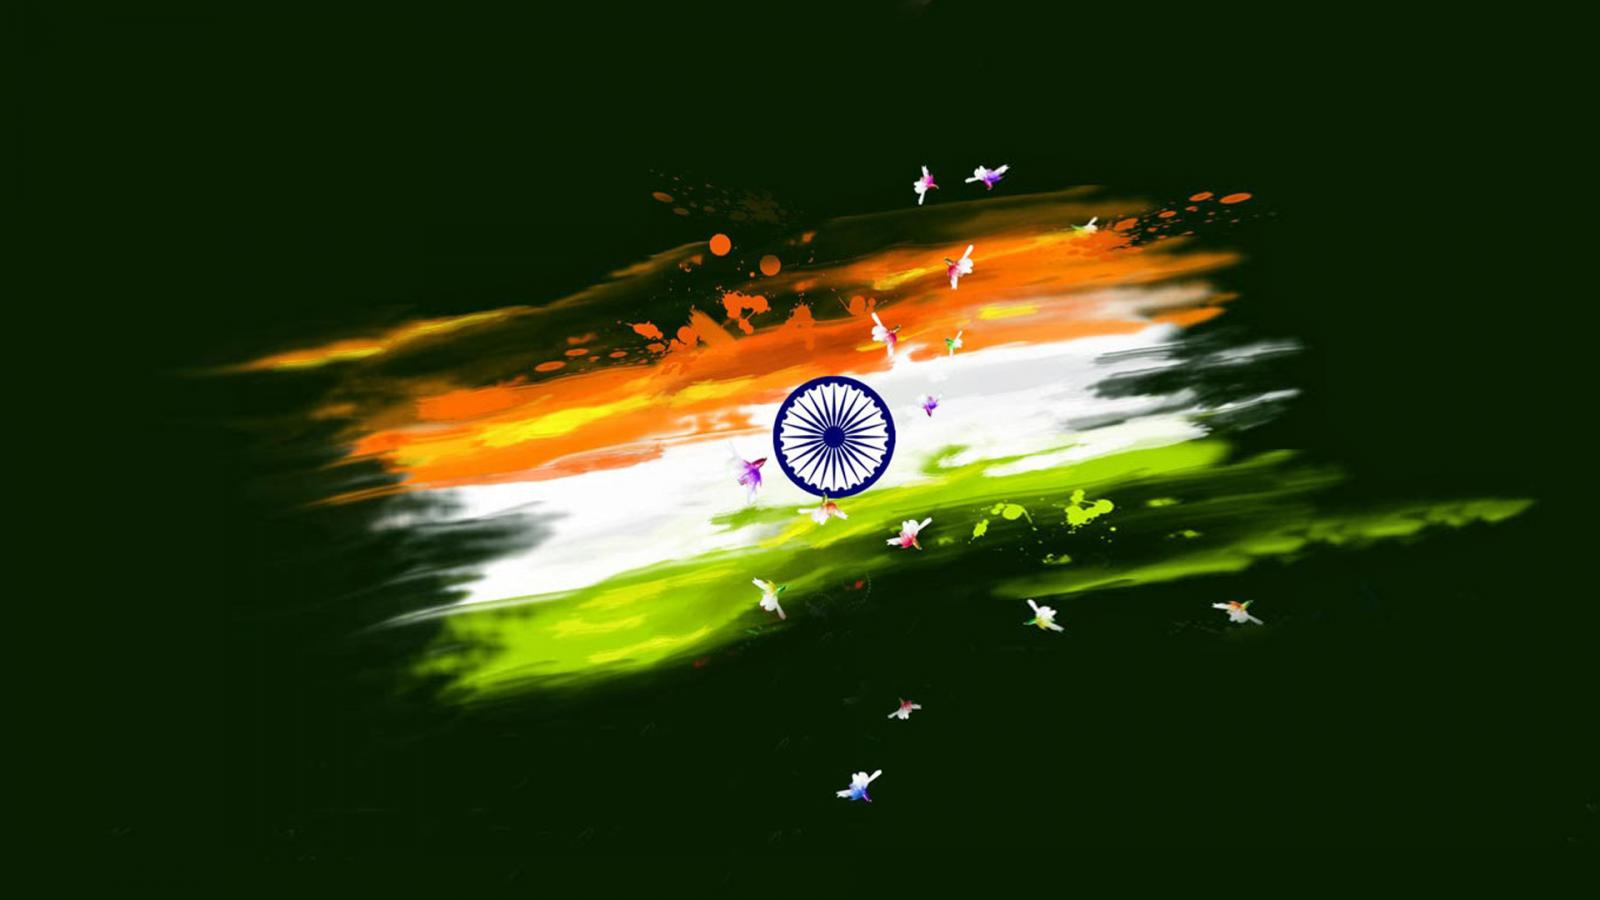 India Flag Hd 1920 1080: Abstract Paint India Flag For Republic Day And